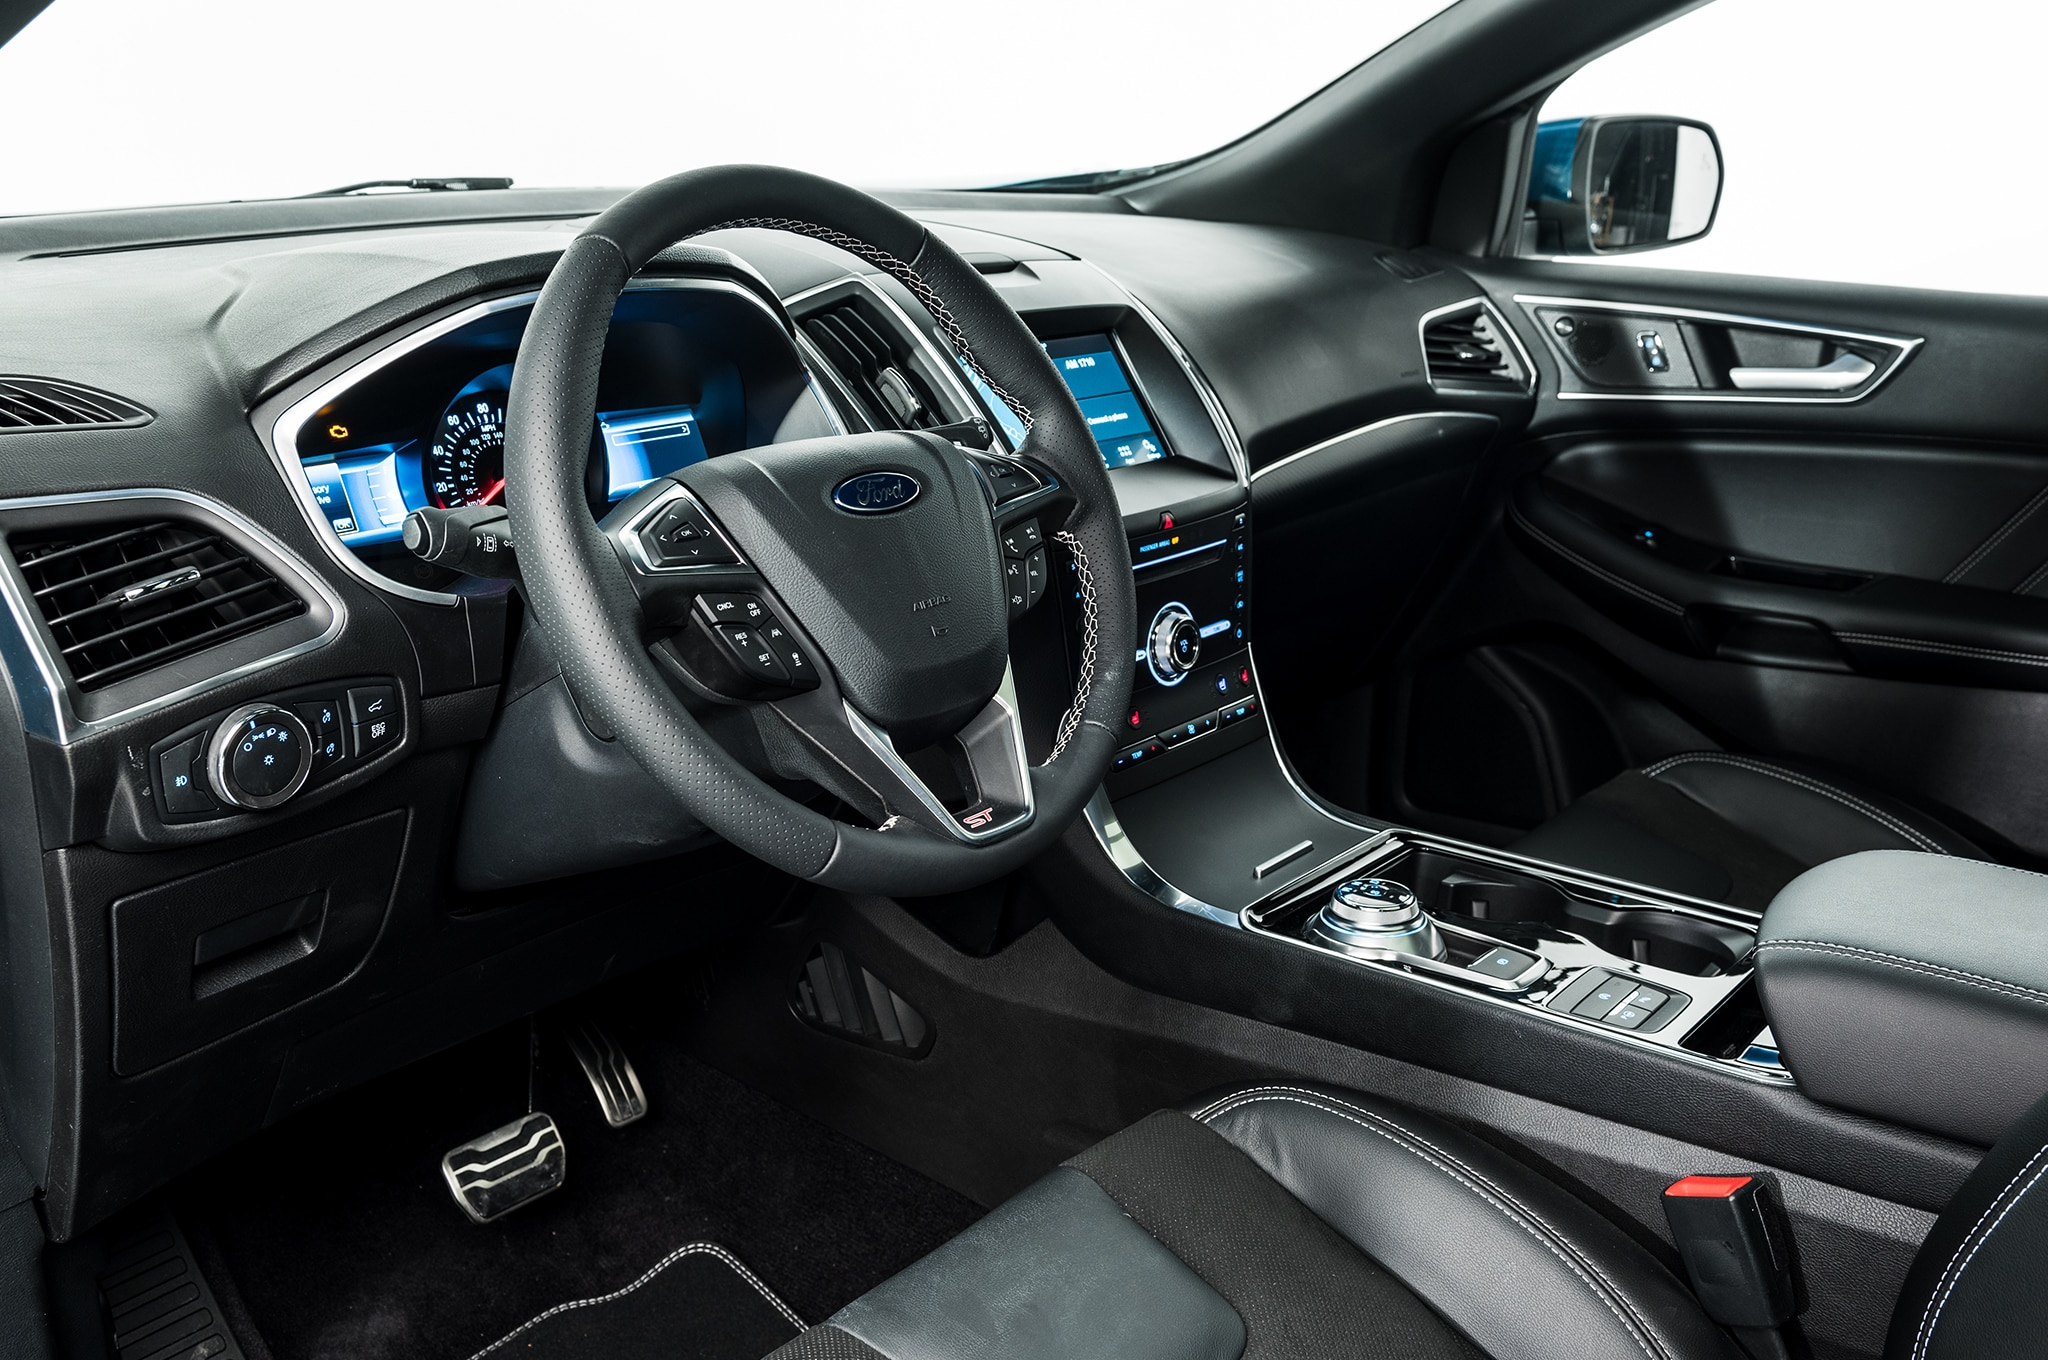 All  Ford Edges Come With A New E Shifter For The Eight Speed Automatic And Wireless Charging On The Center Console